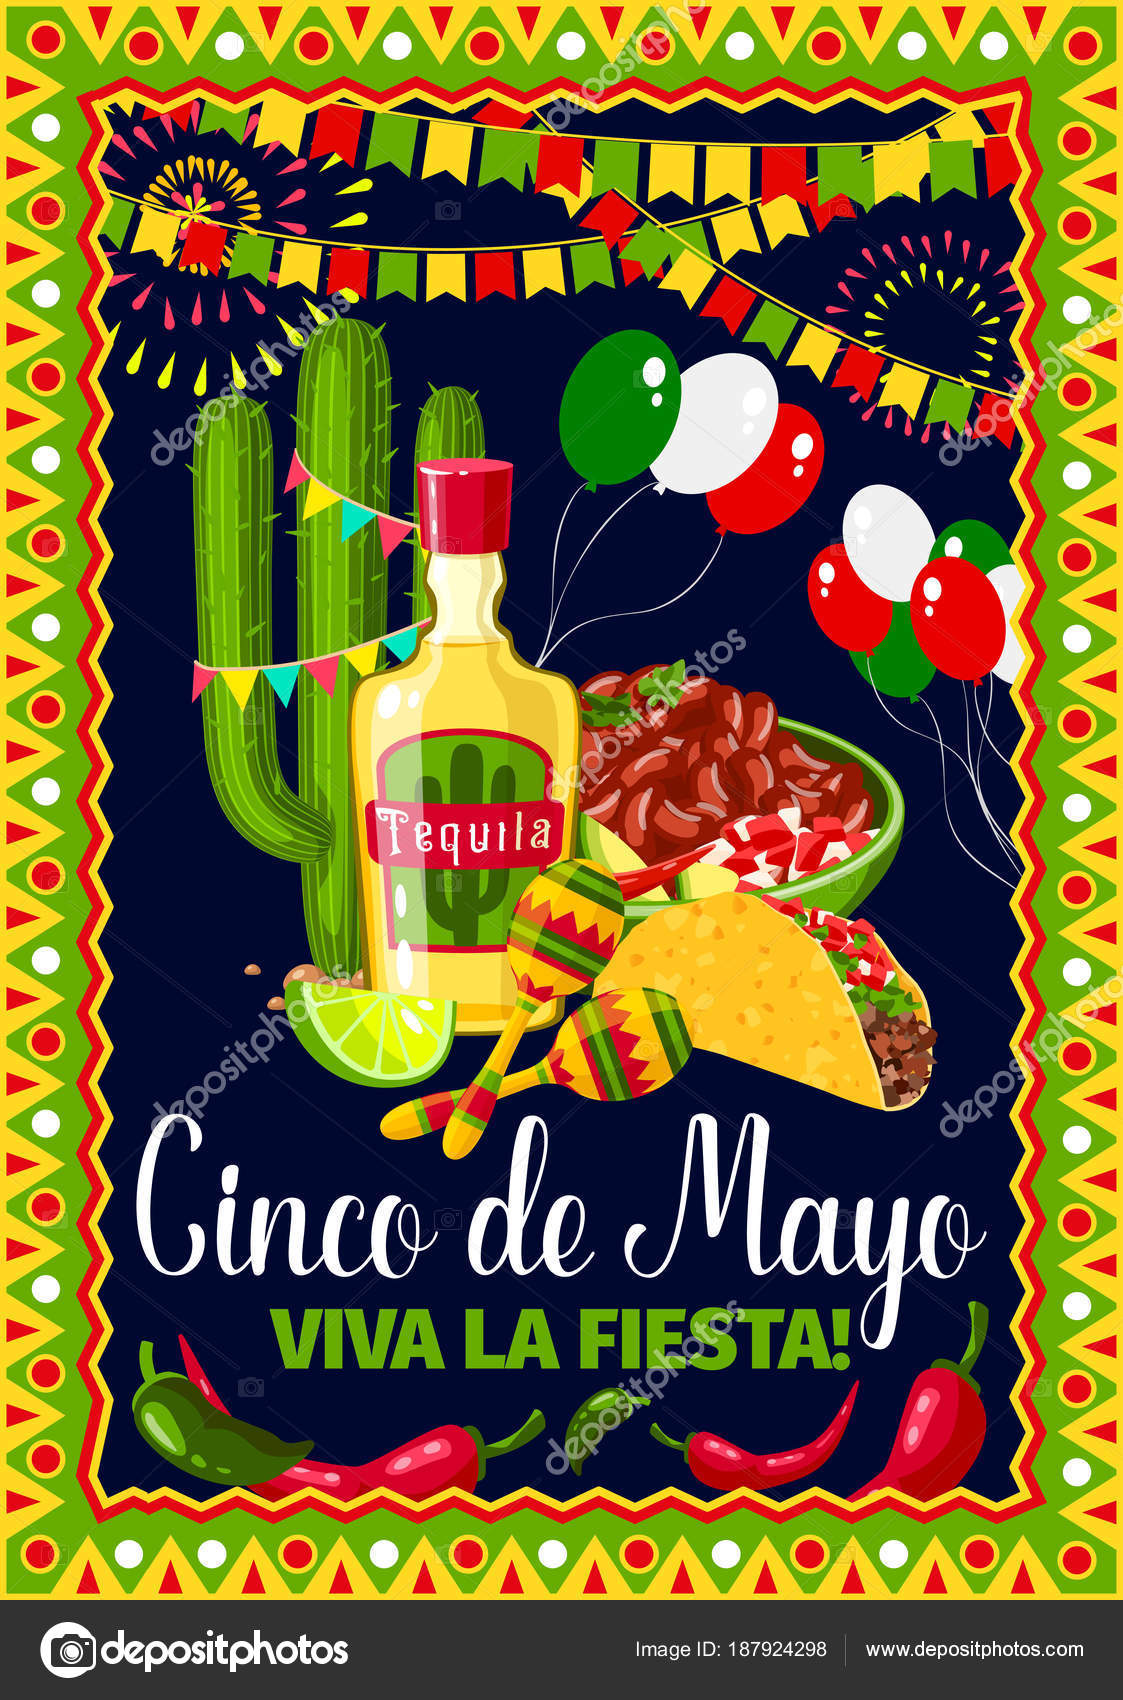 Cinco de mayo mexican holiday vector greeting card stock vector cinco de mayo greeting card for mexican holiday fiesta celebration vector design of traditional mexico symbols of jalapeno pepper and cactus tequila m4hsunfo